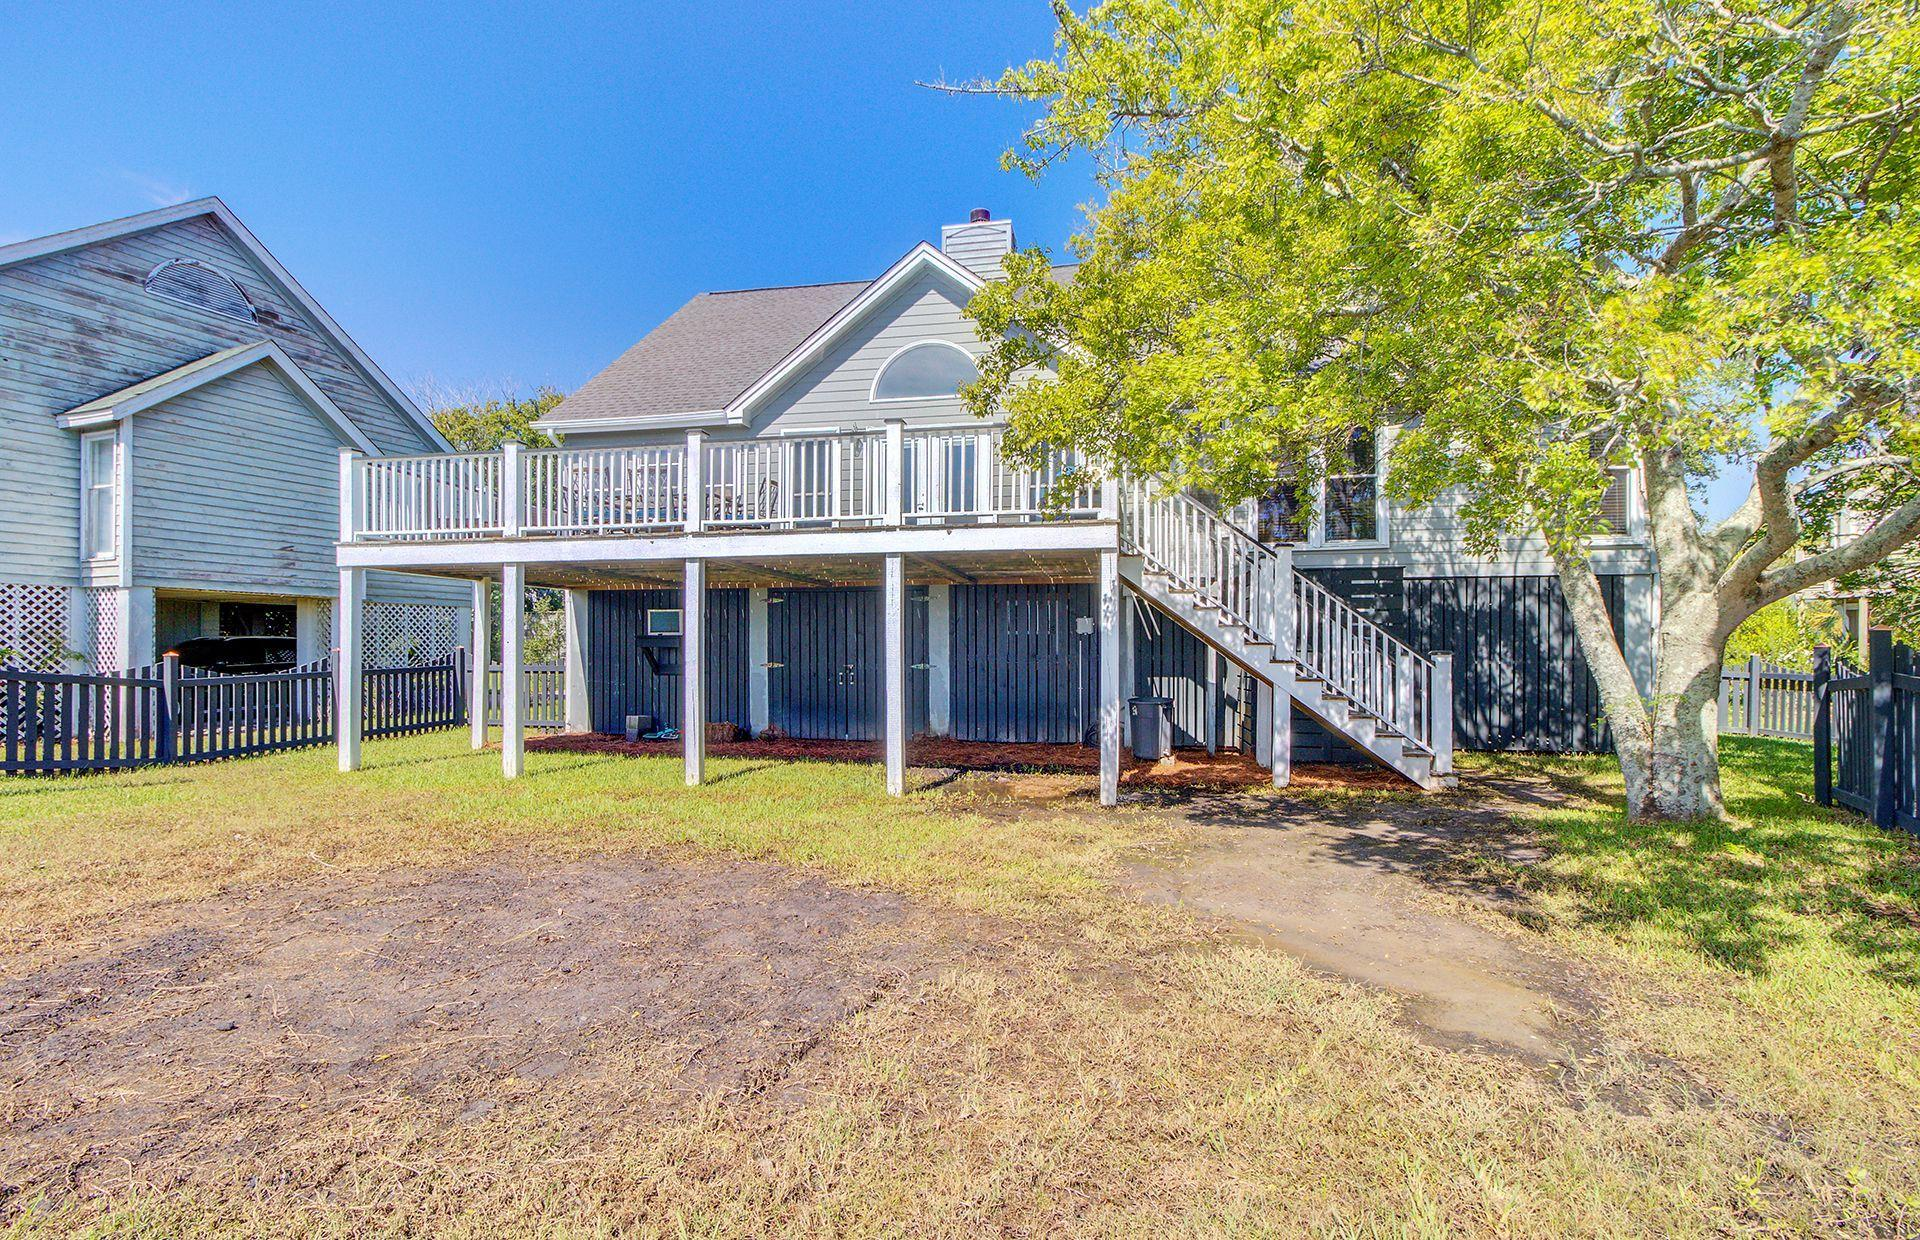 Old Mt Pleasant Homes For Sale - 1543 Privateer, Mount Pleasant, SC - 16